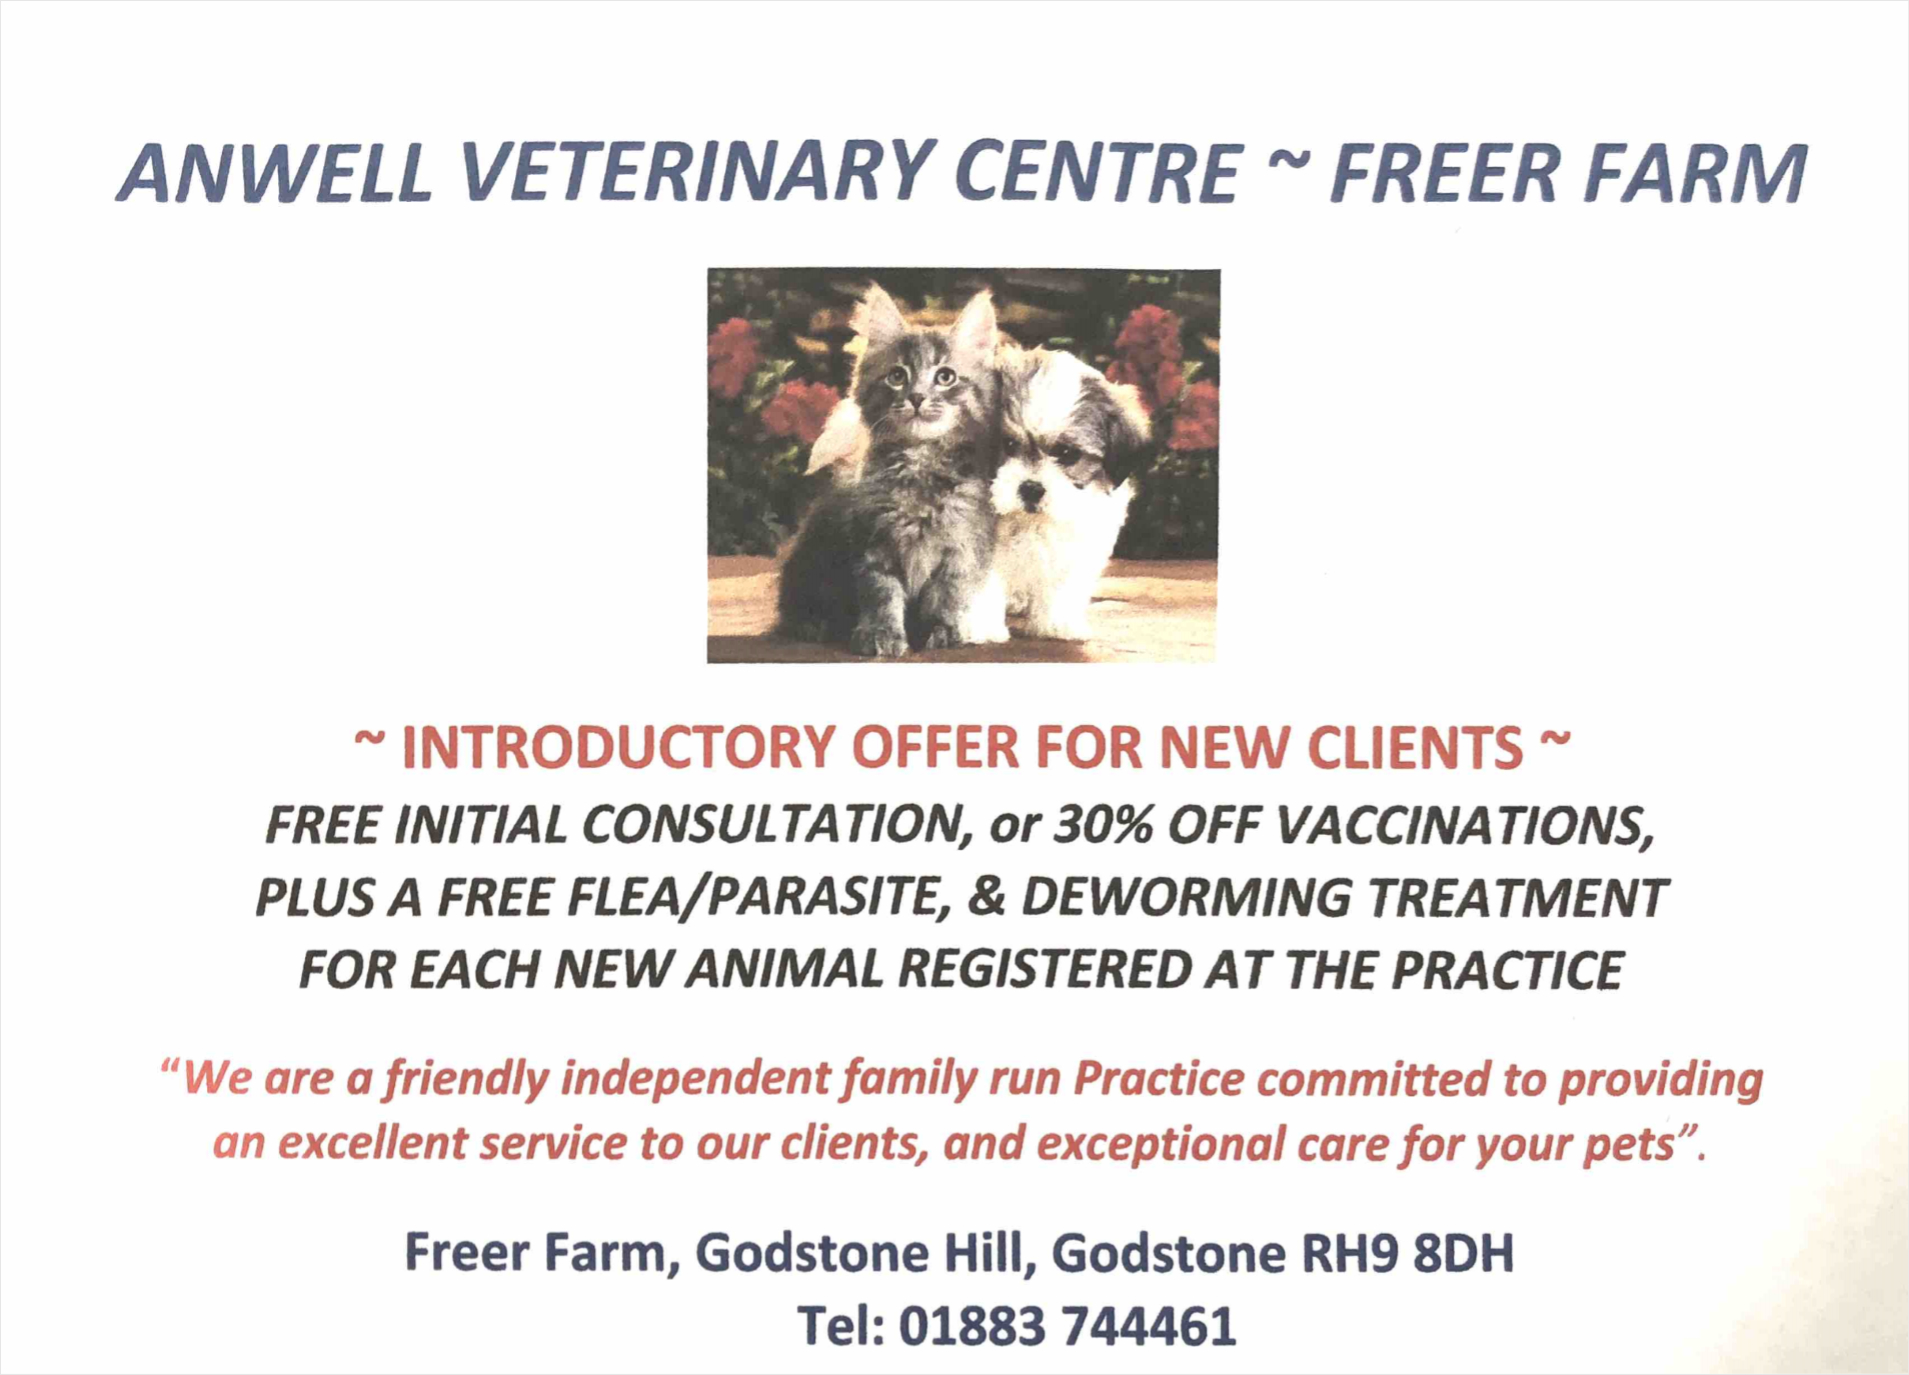 Anwell Veterinary Center Offer